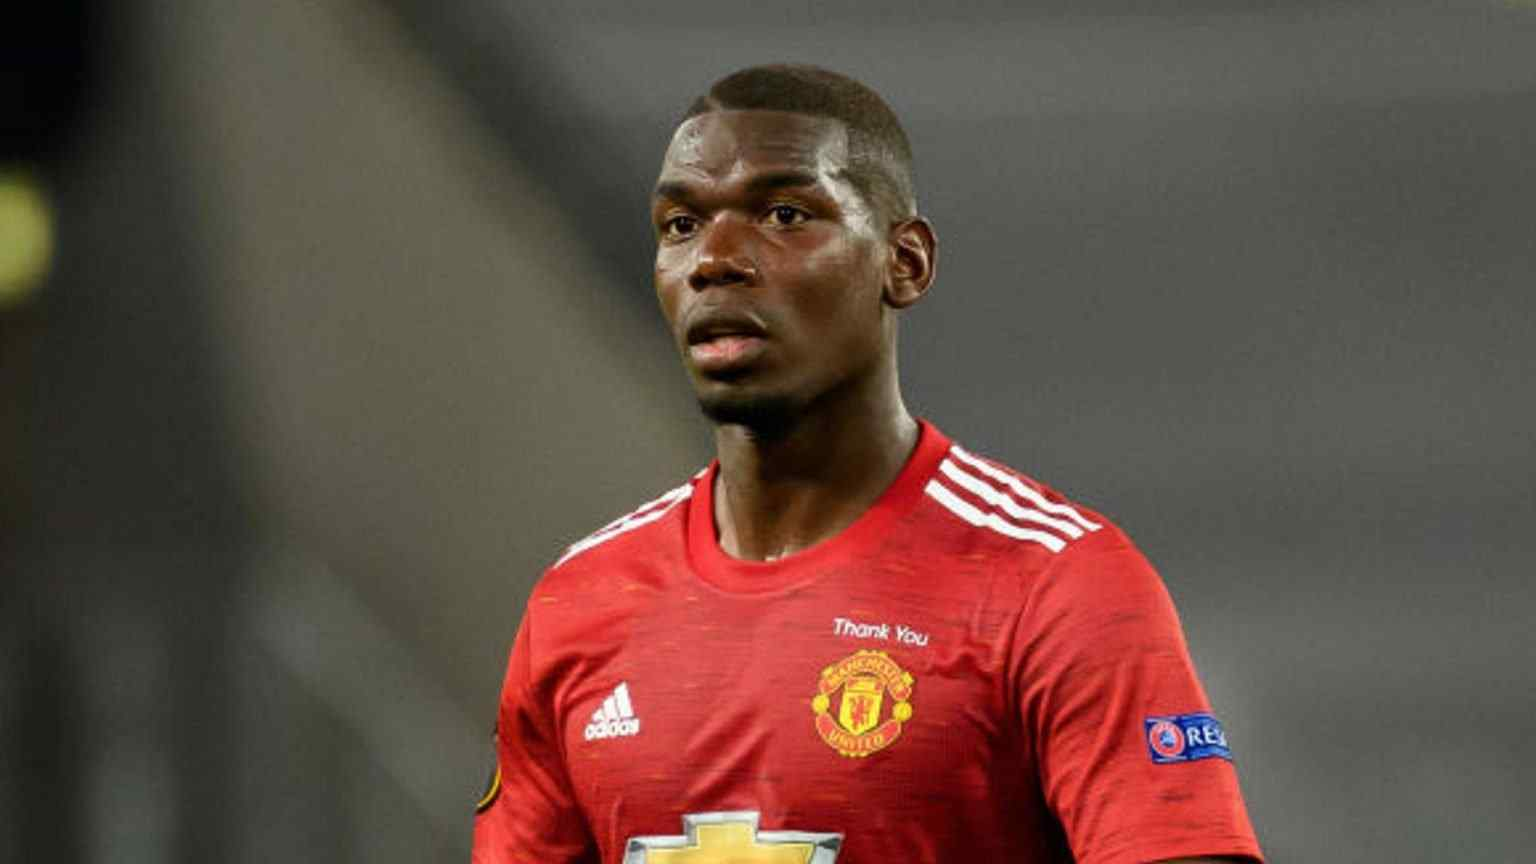 Man Utd suffer Pogba injury blow after 3-3 Draw with Everton